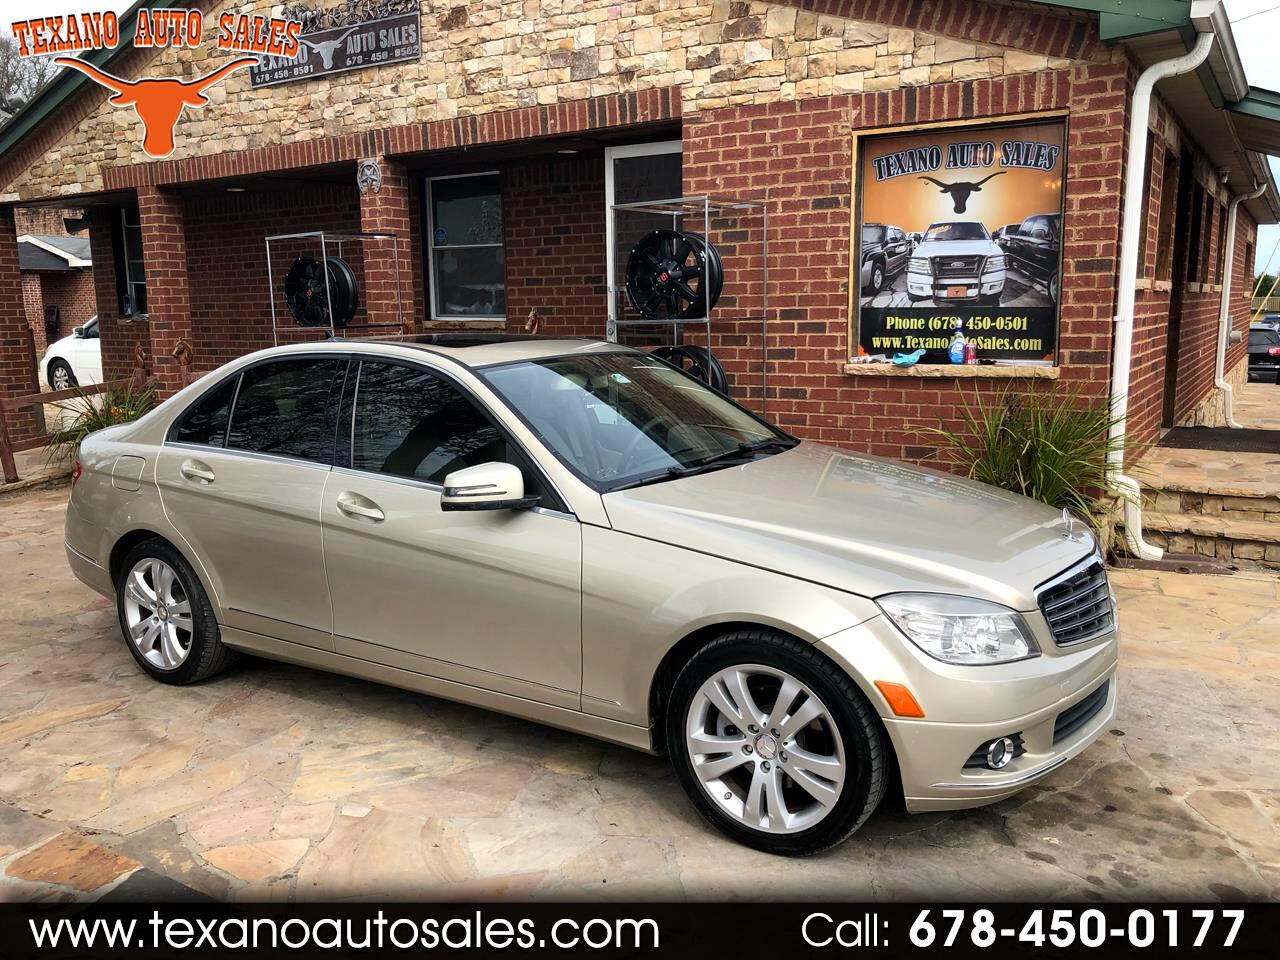 2010 Mercedes-Benz C-Class 4dr Sdn 3.0L Luxury 4MATIC